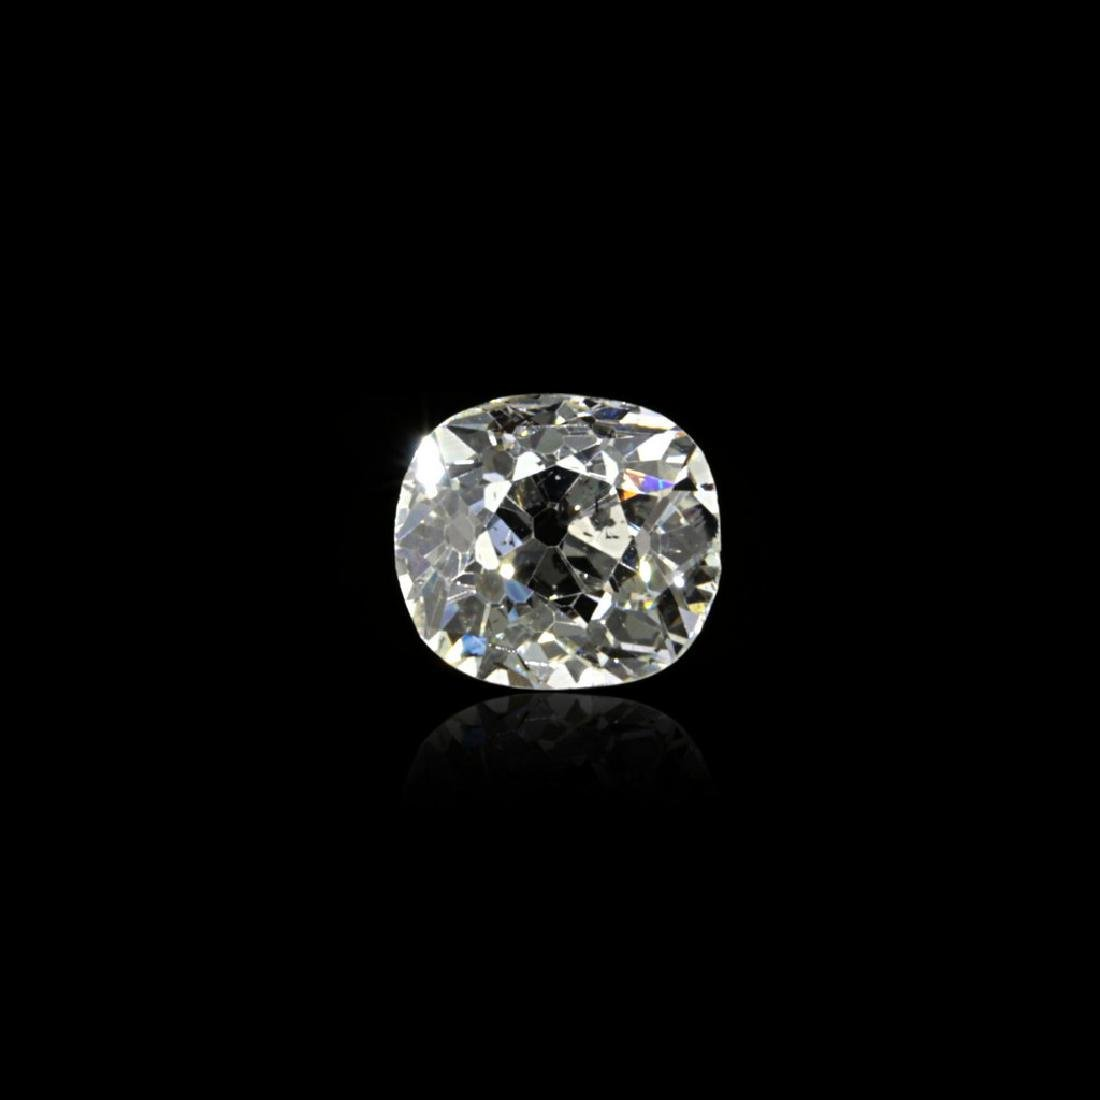 0.99 Ct. Natural G Color Old cut diamond.